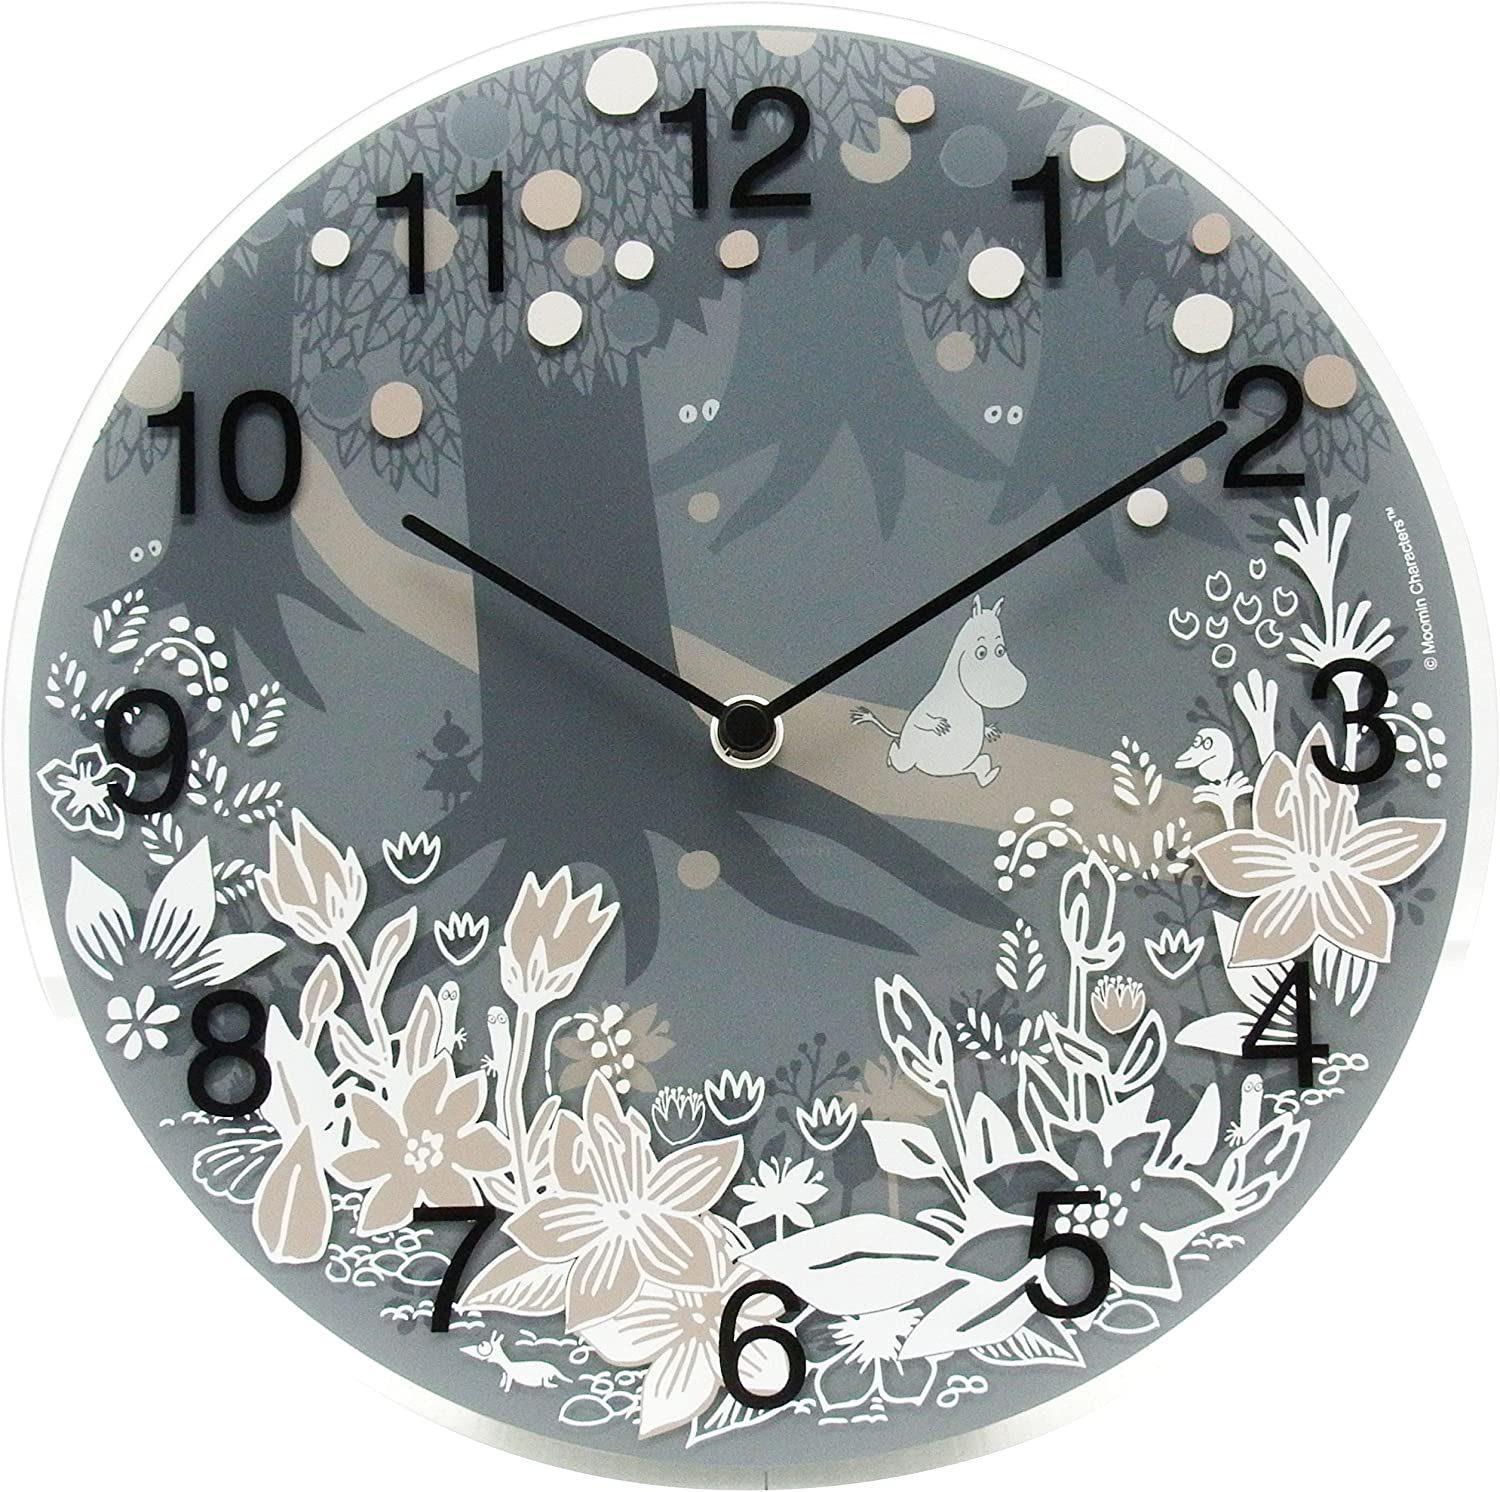 Pee Pseudorabies POS Moomin Timepieces Moomin Time Pieces wall clock Moomin in the forest MTP-03-0008 by POS